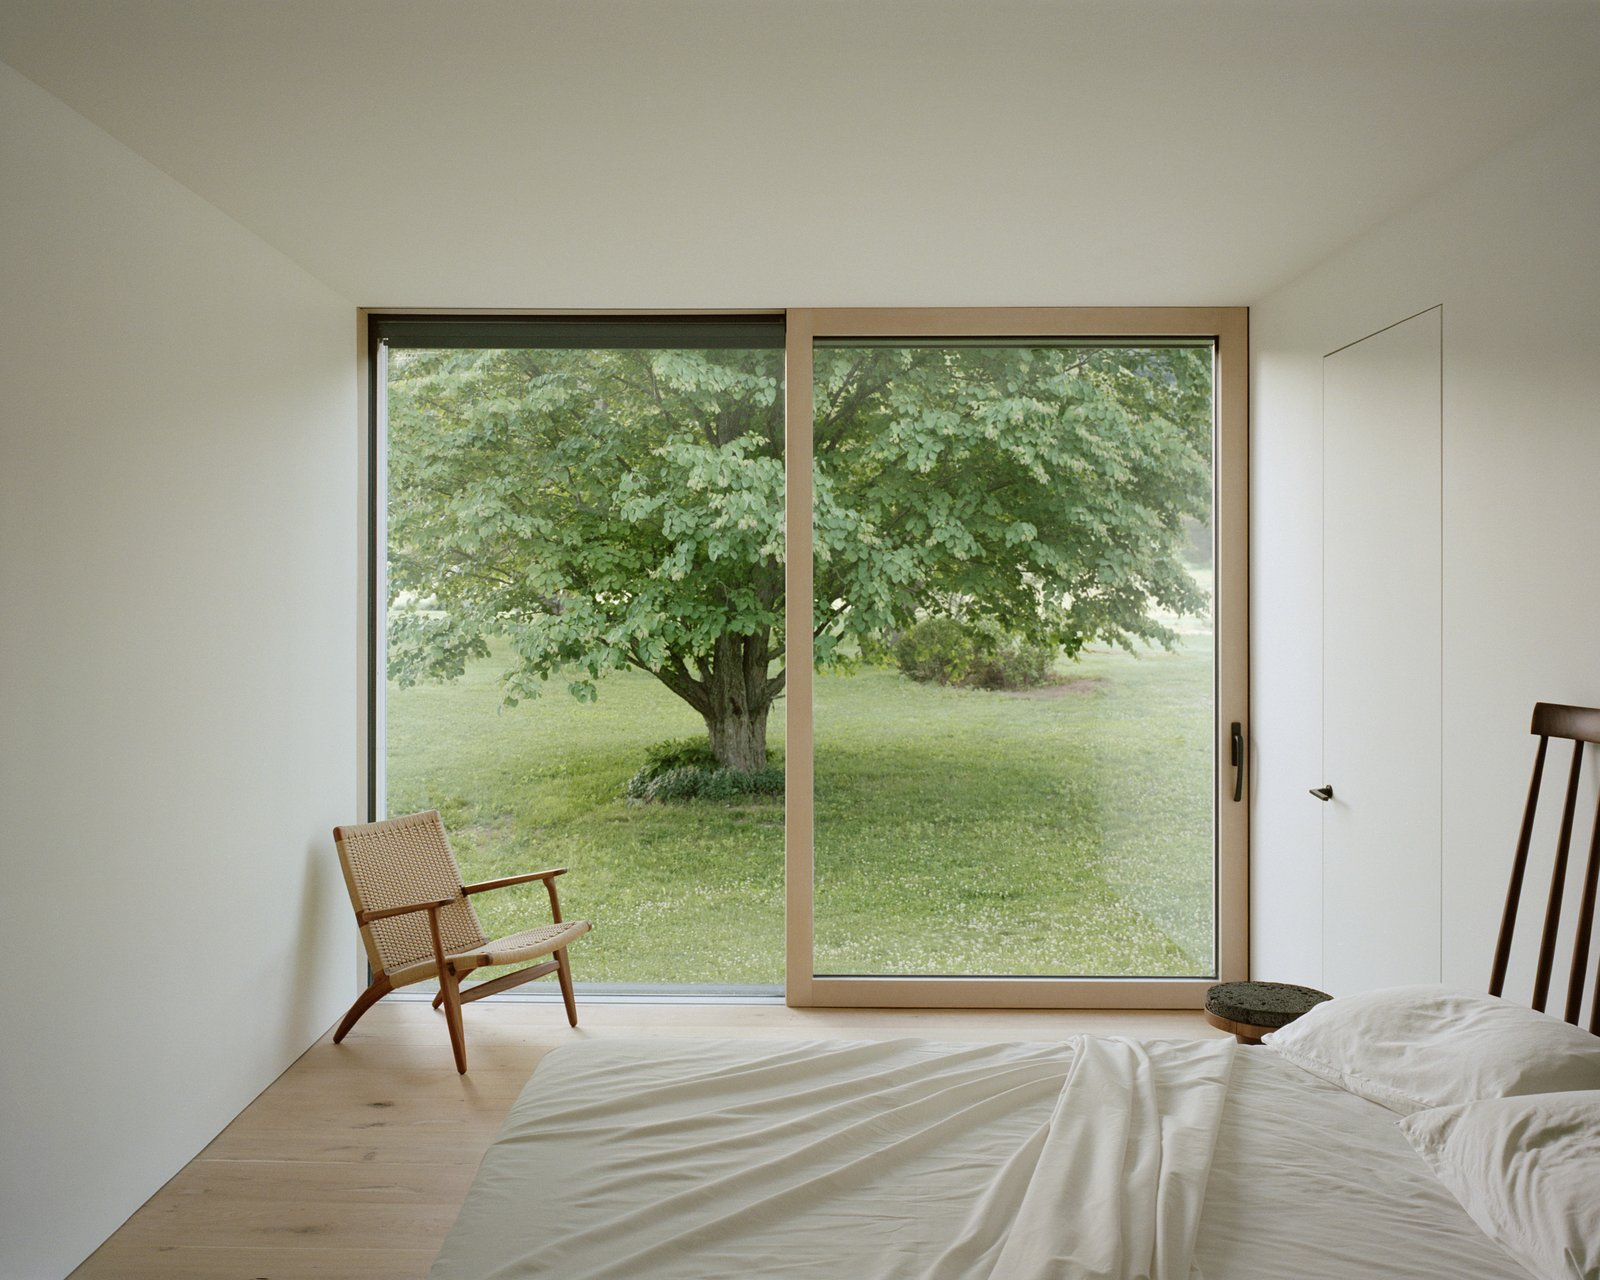 Sheffield residence by Vincent Appel / Of Possible bedroom with floor to ceiling window